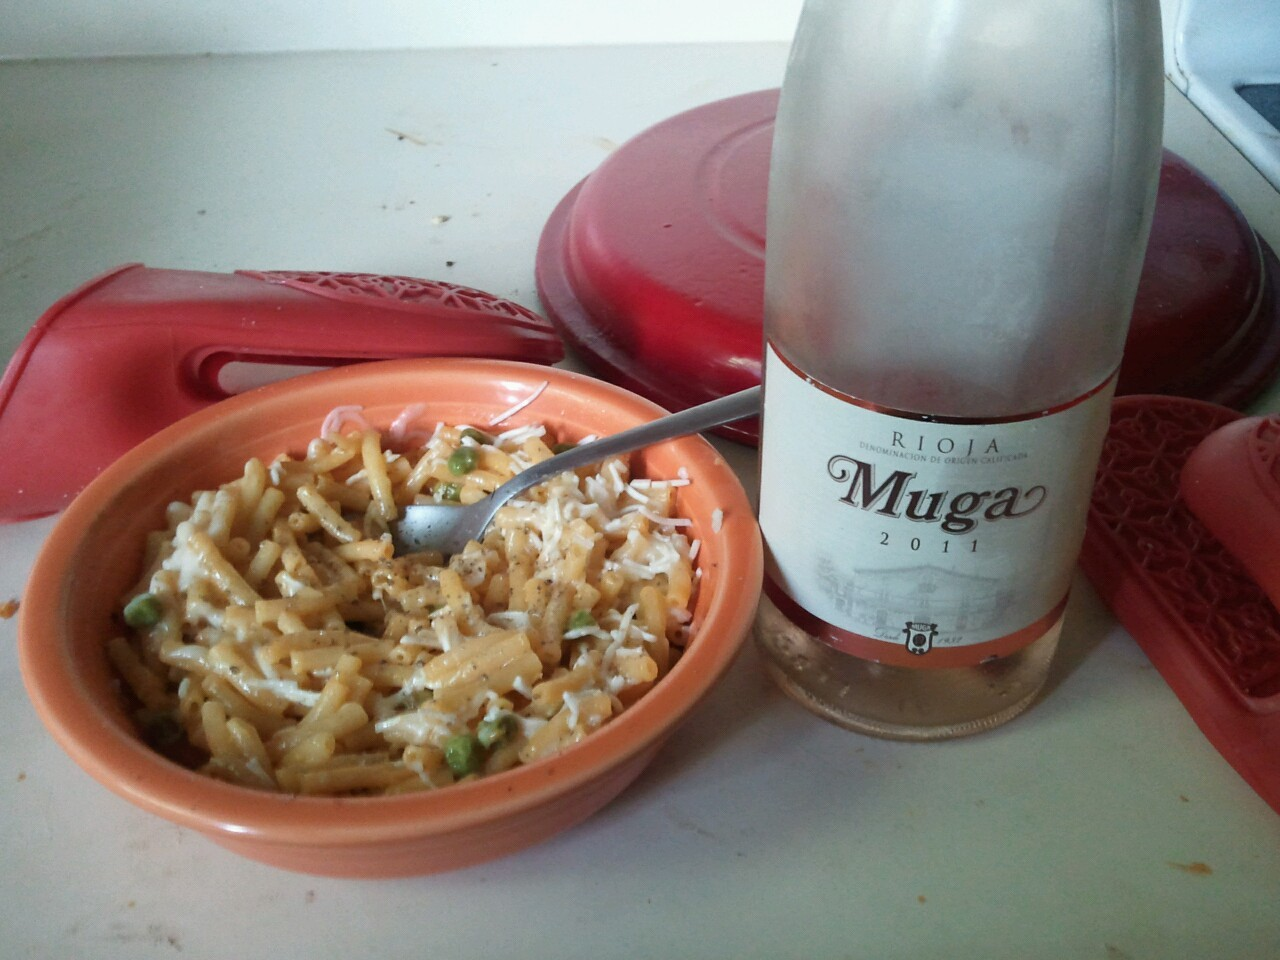 Hola rioja. Brunch is served. Wonderful #wine and mac&cheese pairing.